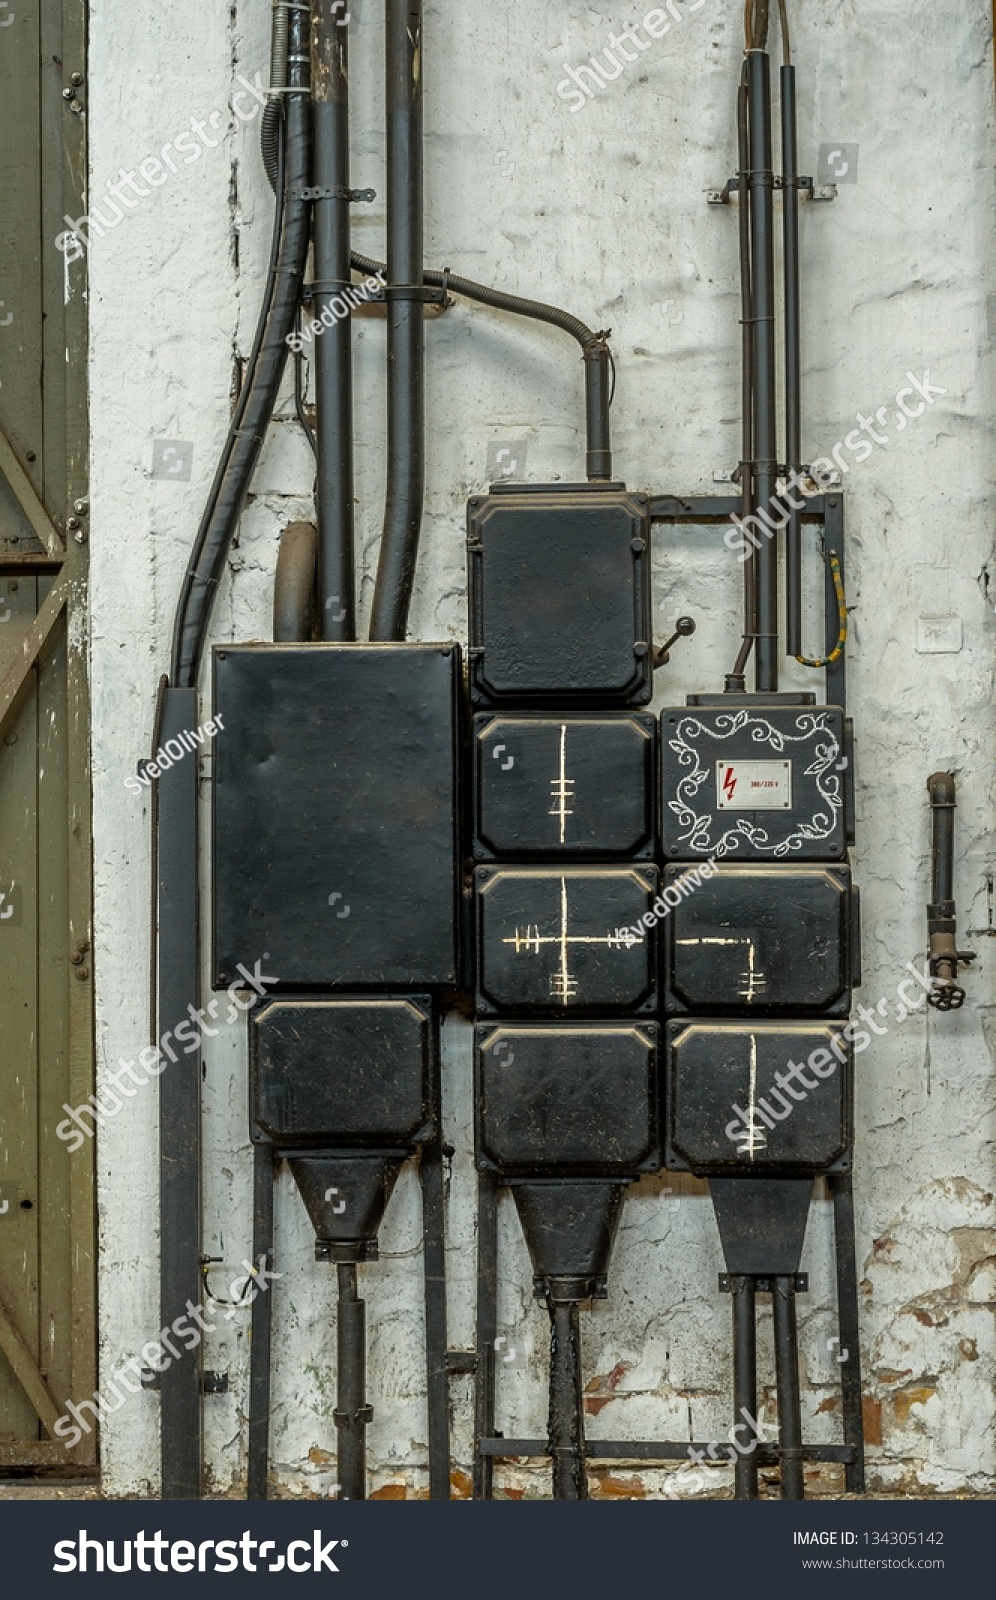 medium resolution of industrial fuse box on the wall closeup photo